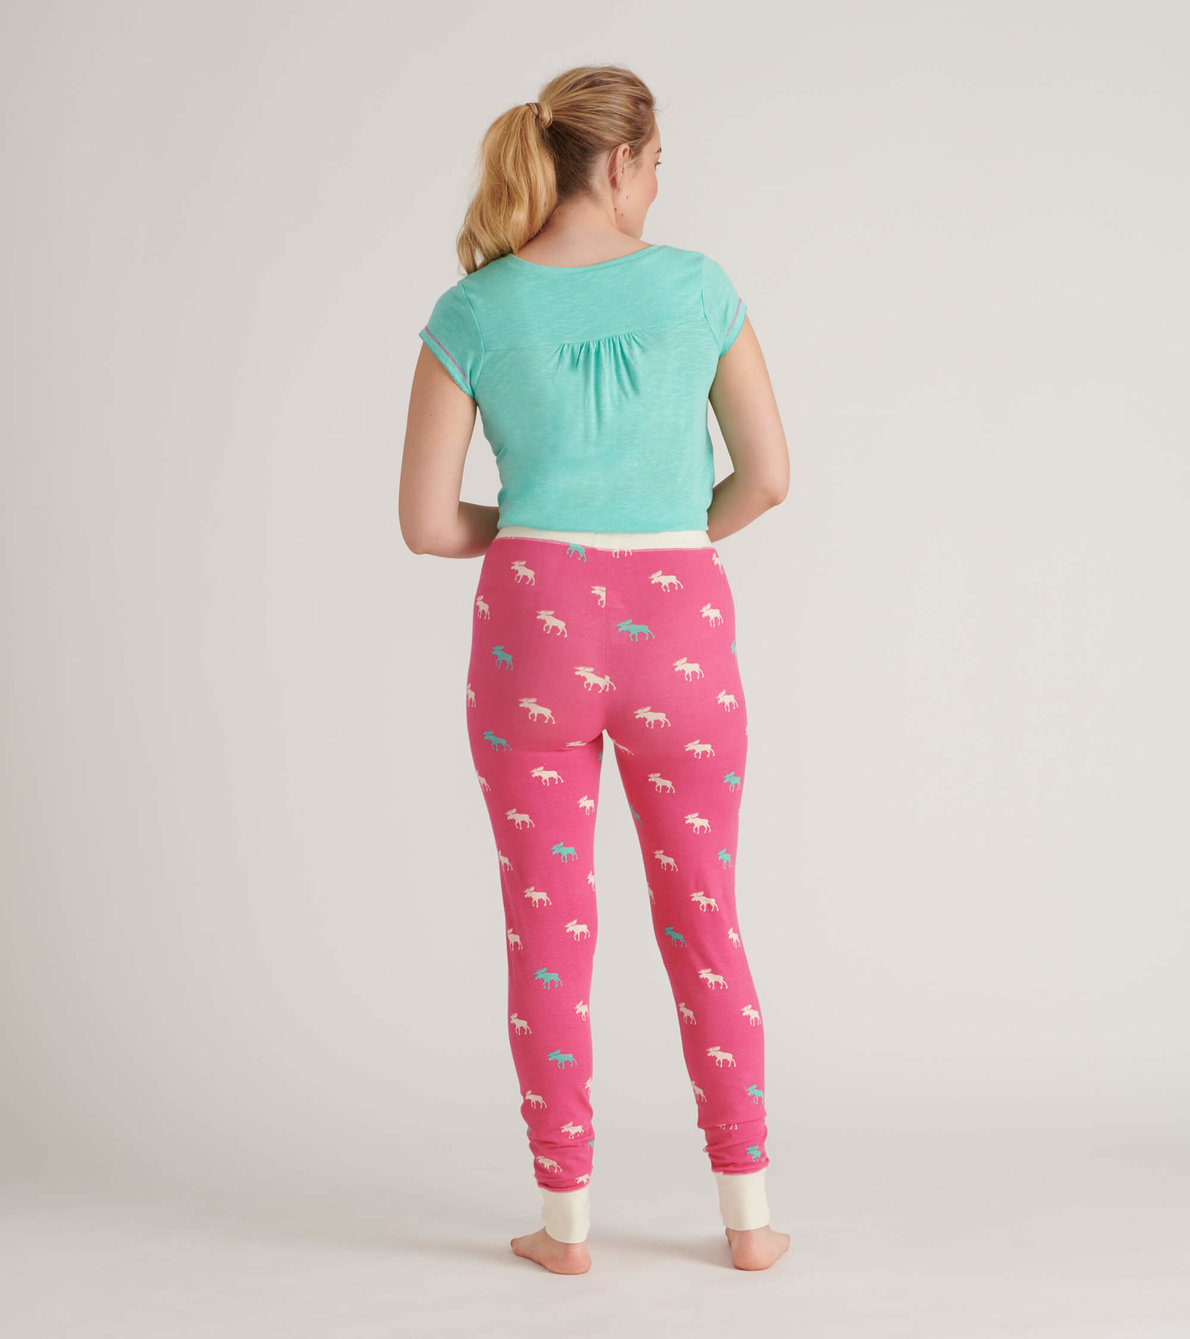 View larger image of Raspberry Moose Women's Sleep Leggings